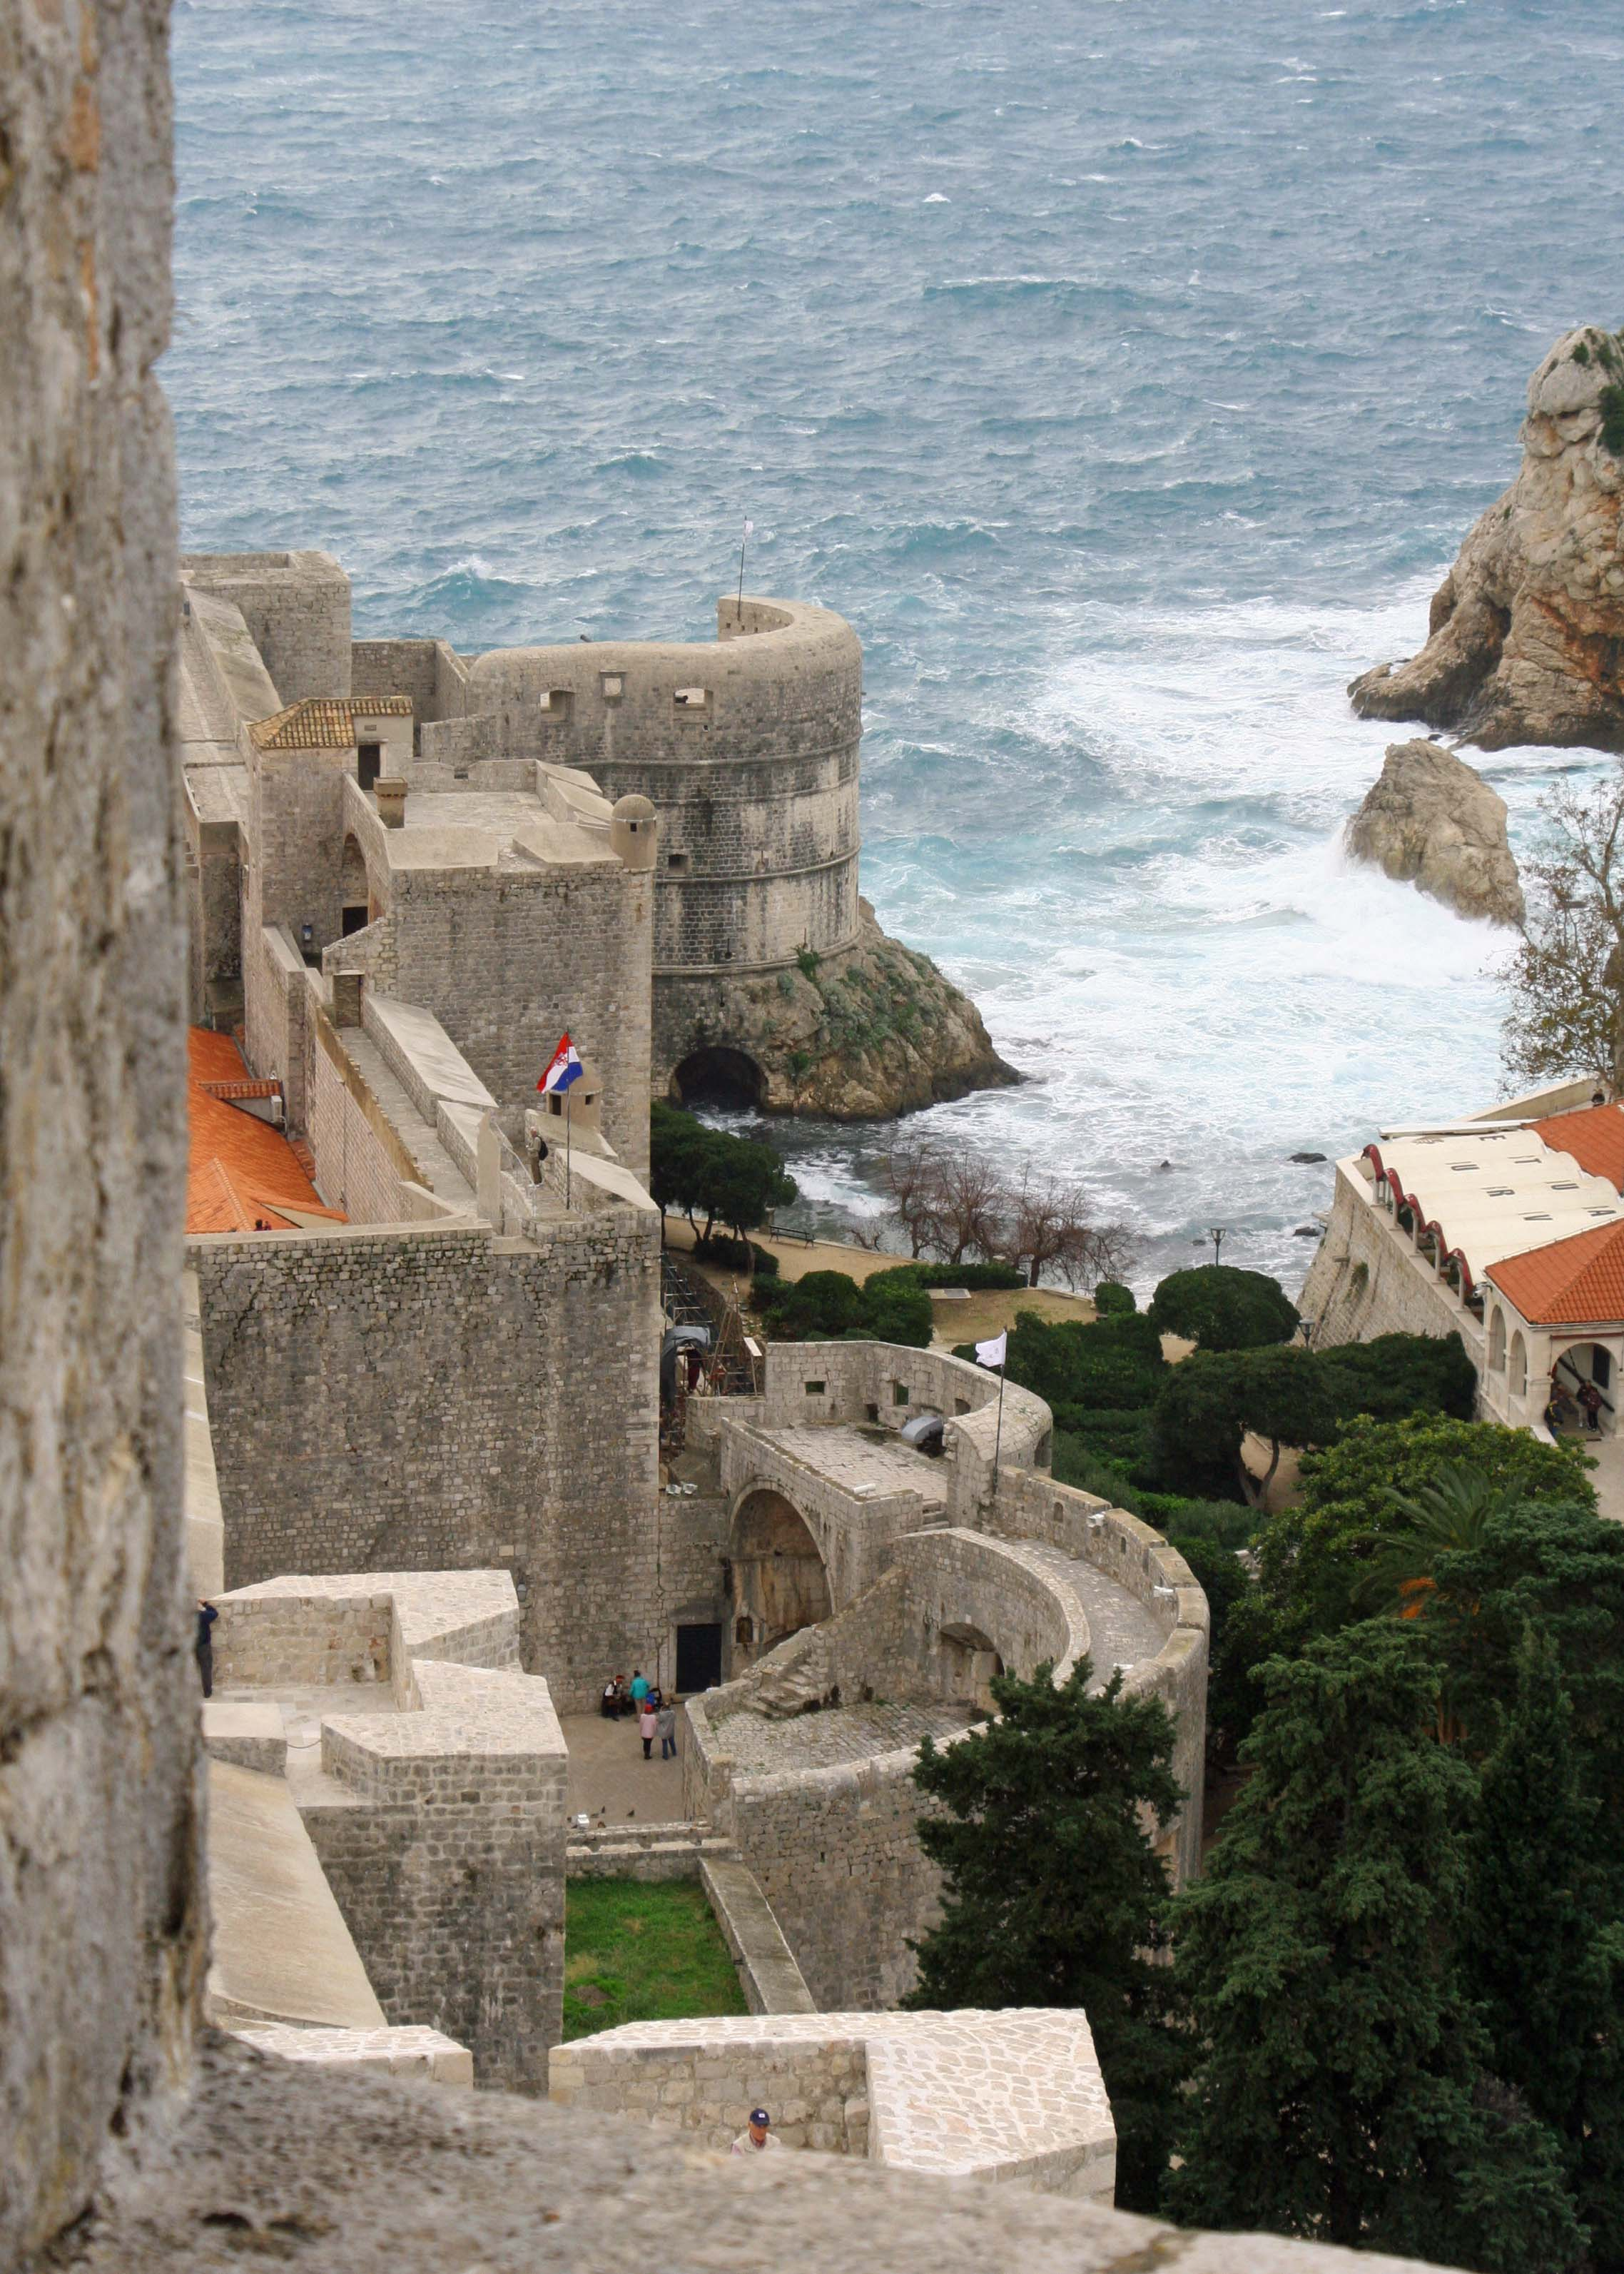 This photo of the walls was taken from Minceta Tower, the highest spot on the walls.